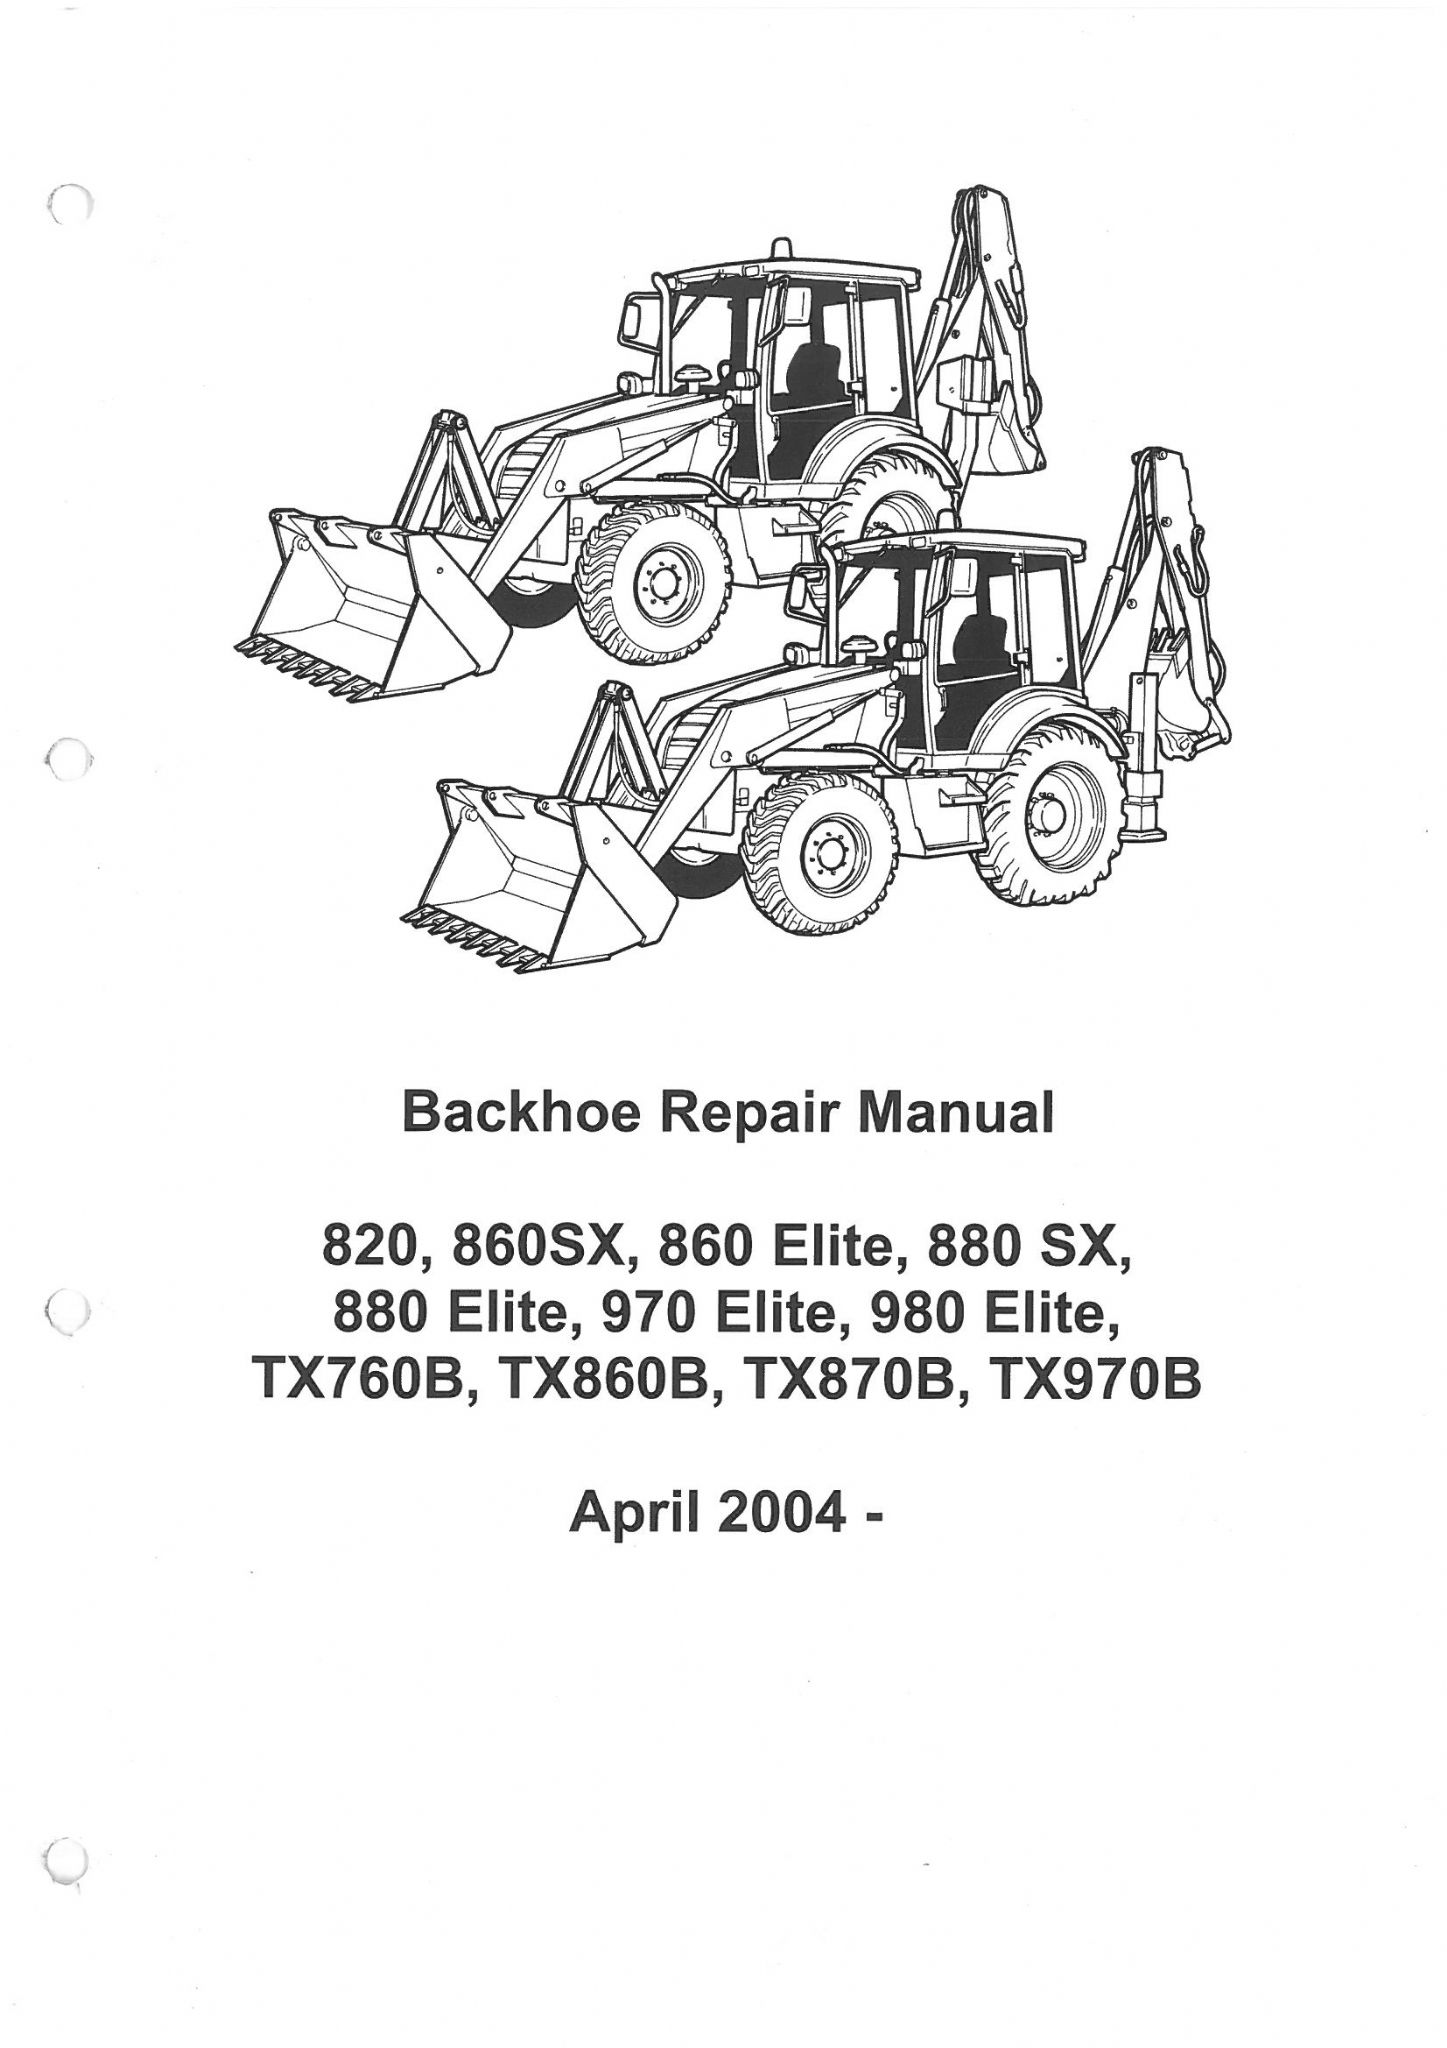 terex digger loader backhoe 820 860sx 860 elite 880sx 880 elite 970 rh agrimanuals com terex 860 workshop manual terex 860 service manual